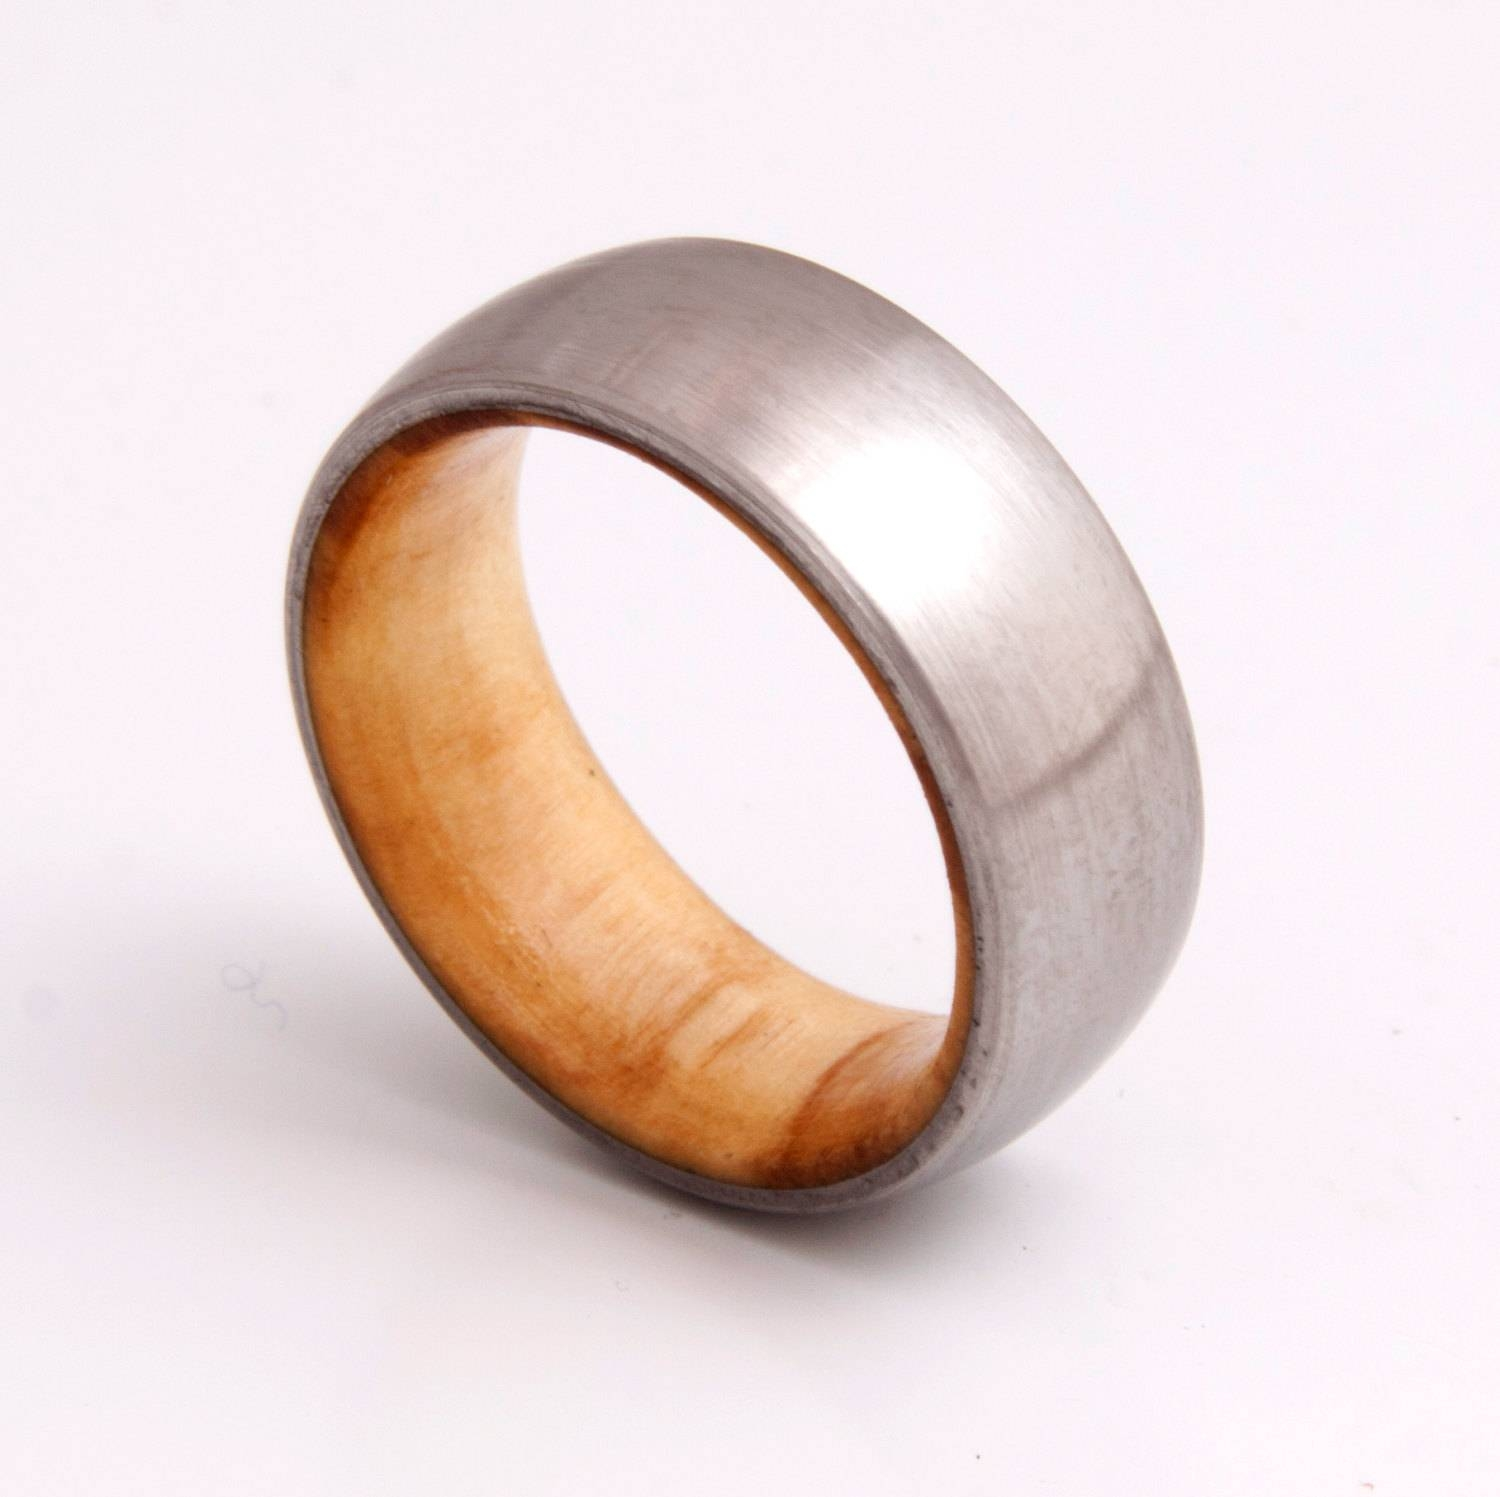 Wooden Ring / Wedding Band / Titanium Olive Wood Ring With Regard To Titanium Men Wedding Bands (View 15 of 15)